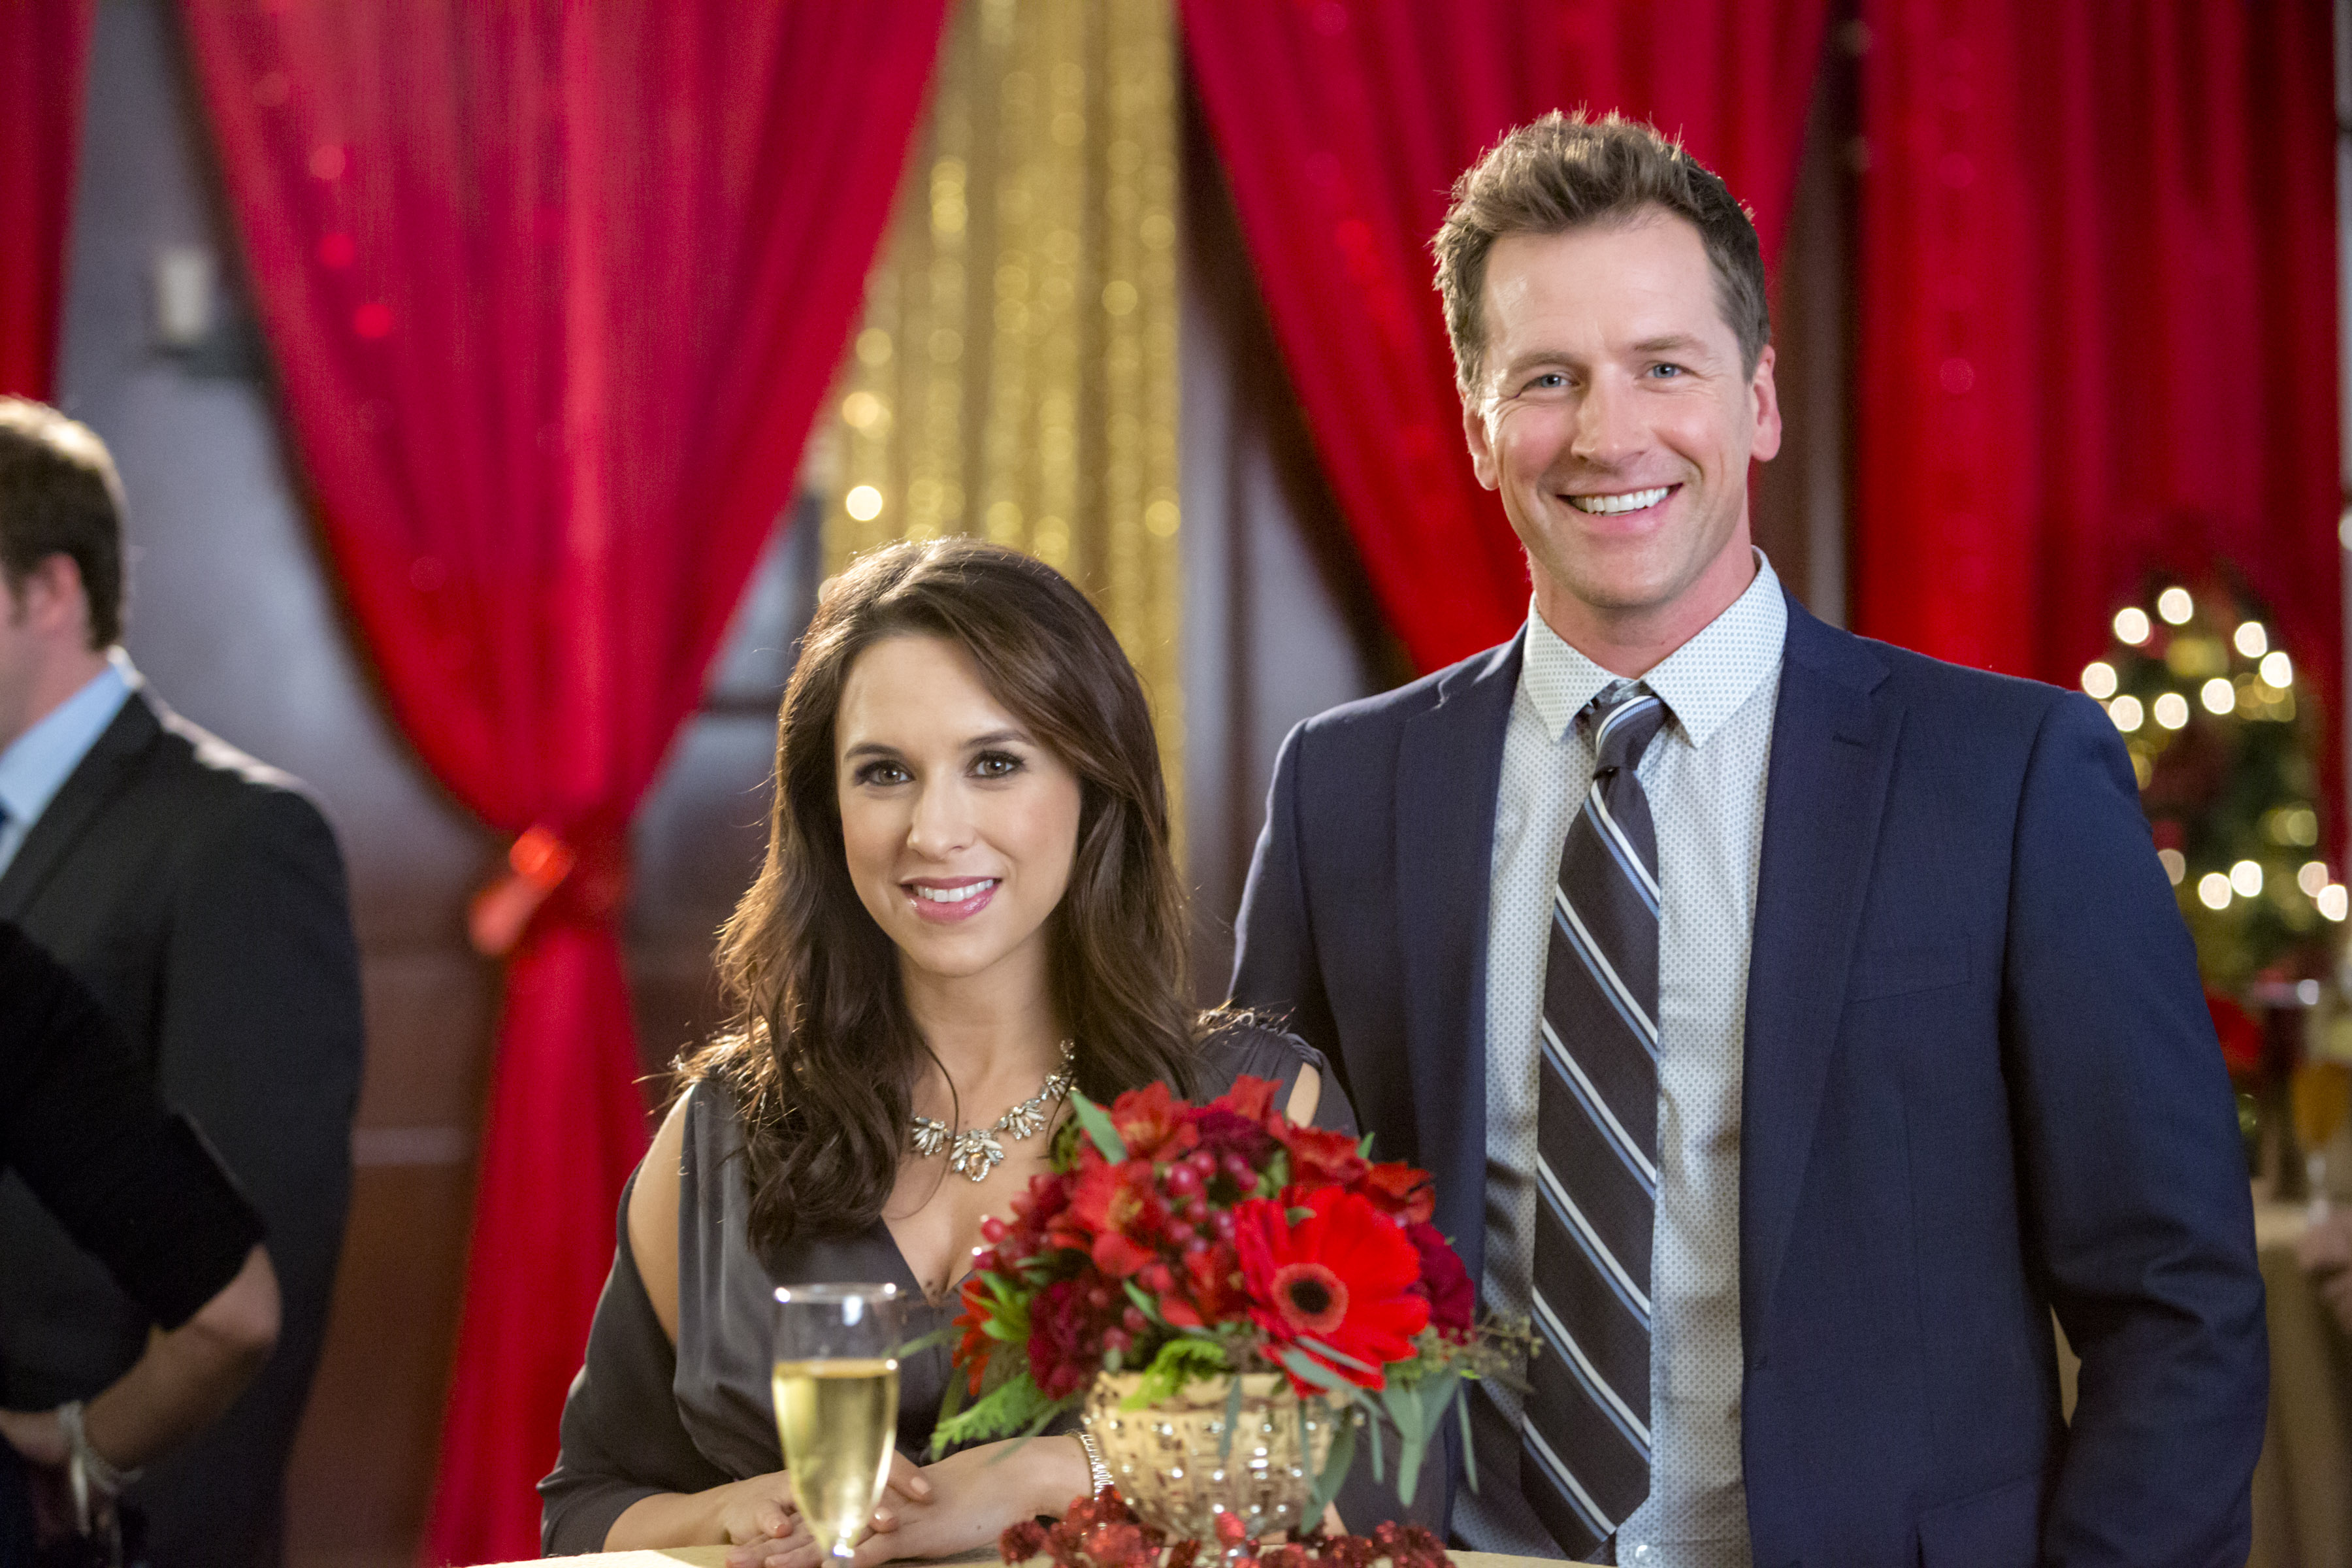 Lacey Chabert and Paul Greene  star in 'A Wish for Christmas,' premiering at 8 p.m. Oct. 29 on Hallmark Channel. (Credit: Crown Media/Bettina Strauss)